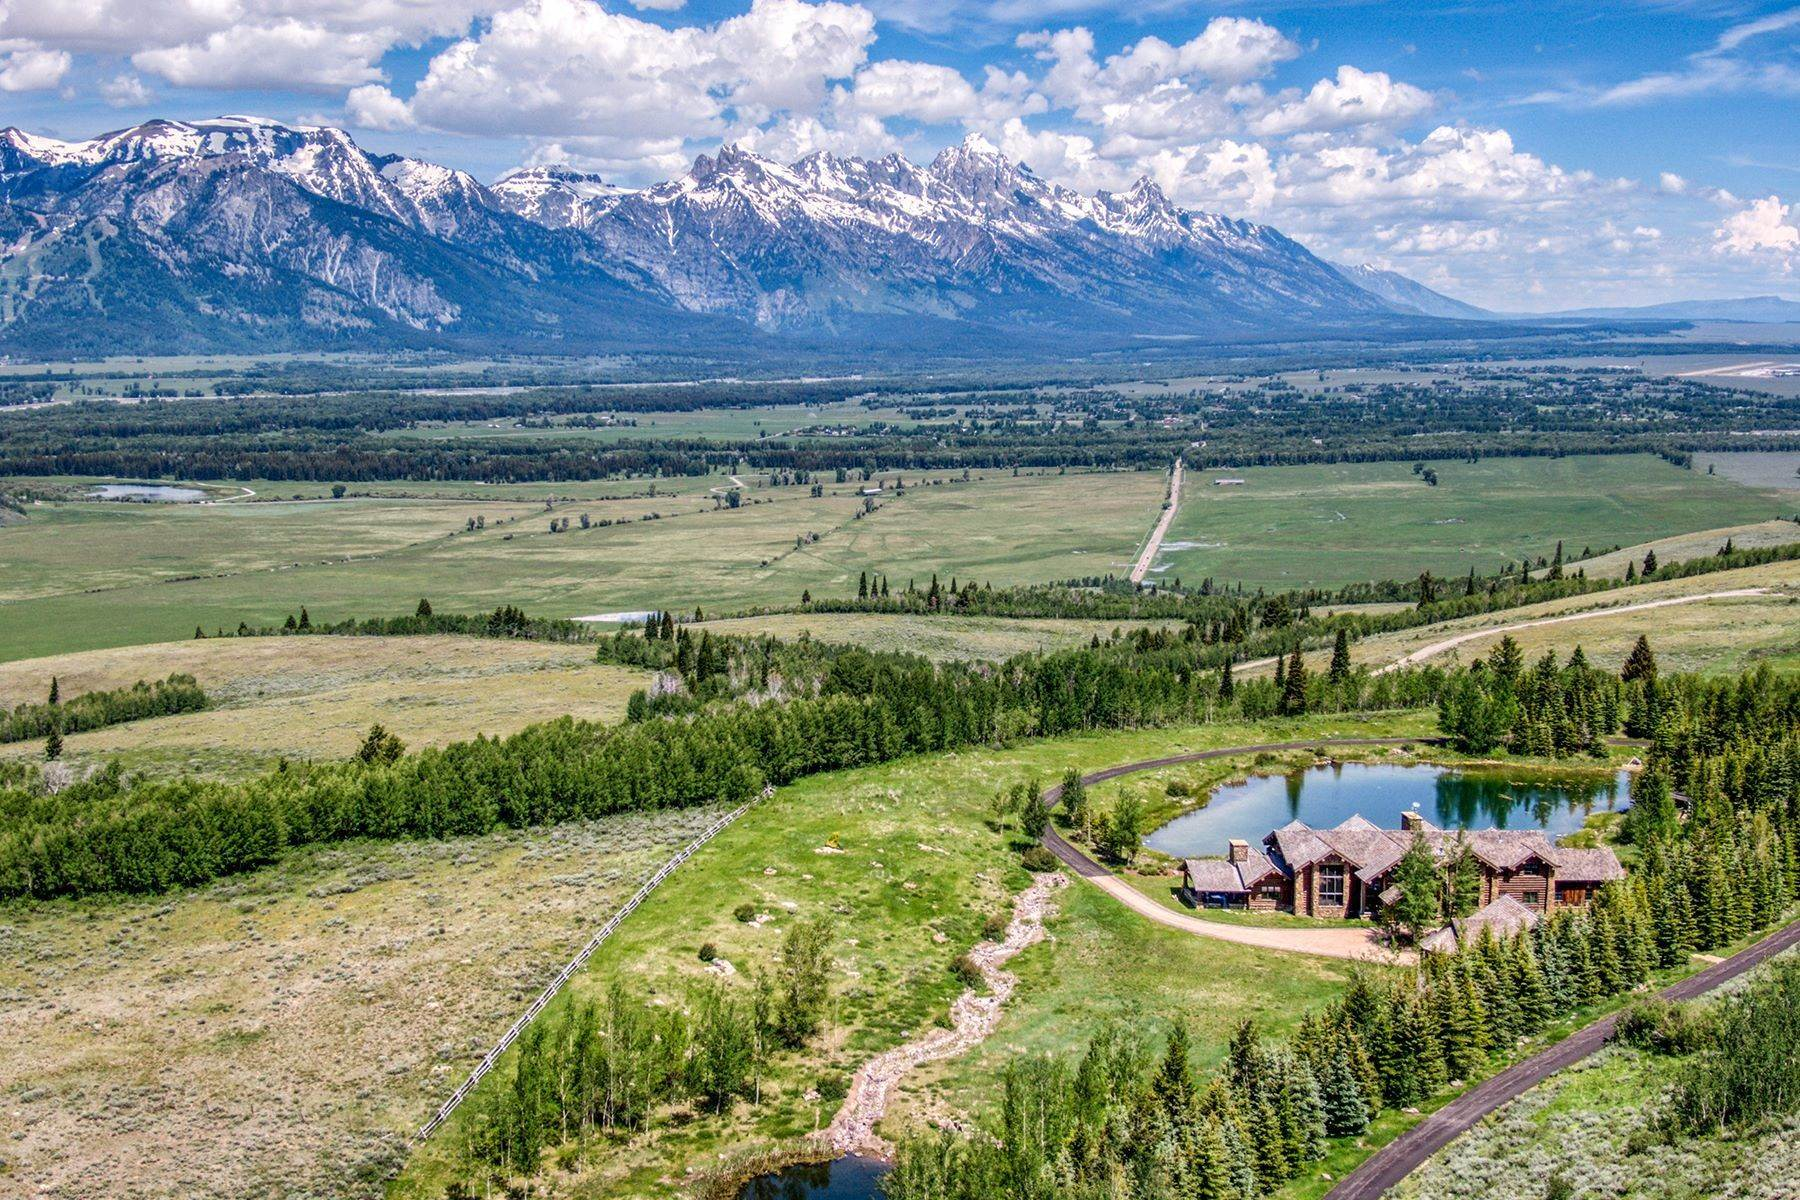 Property for Sale at Riva Ridge Retreat, Residence of Western Grandeur 3000 Riva Ridge Road Jackson, Wyoming 83001 United States